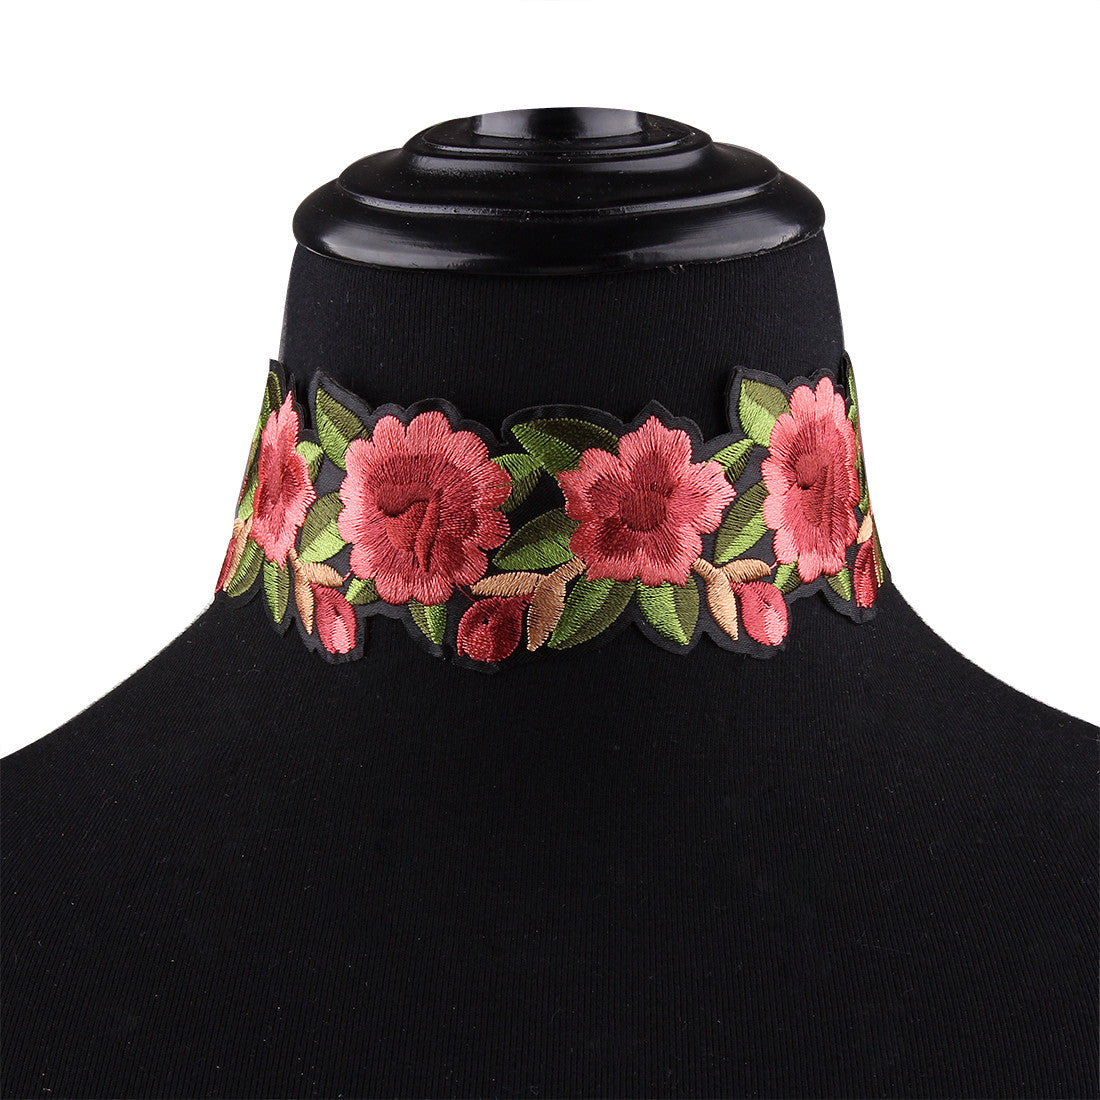 Boho Style Bohemian Printed Flower Embroidery Choker Necklace Jewelry Collar Gift